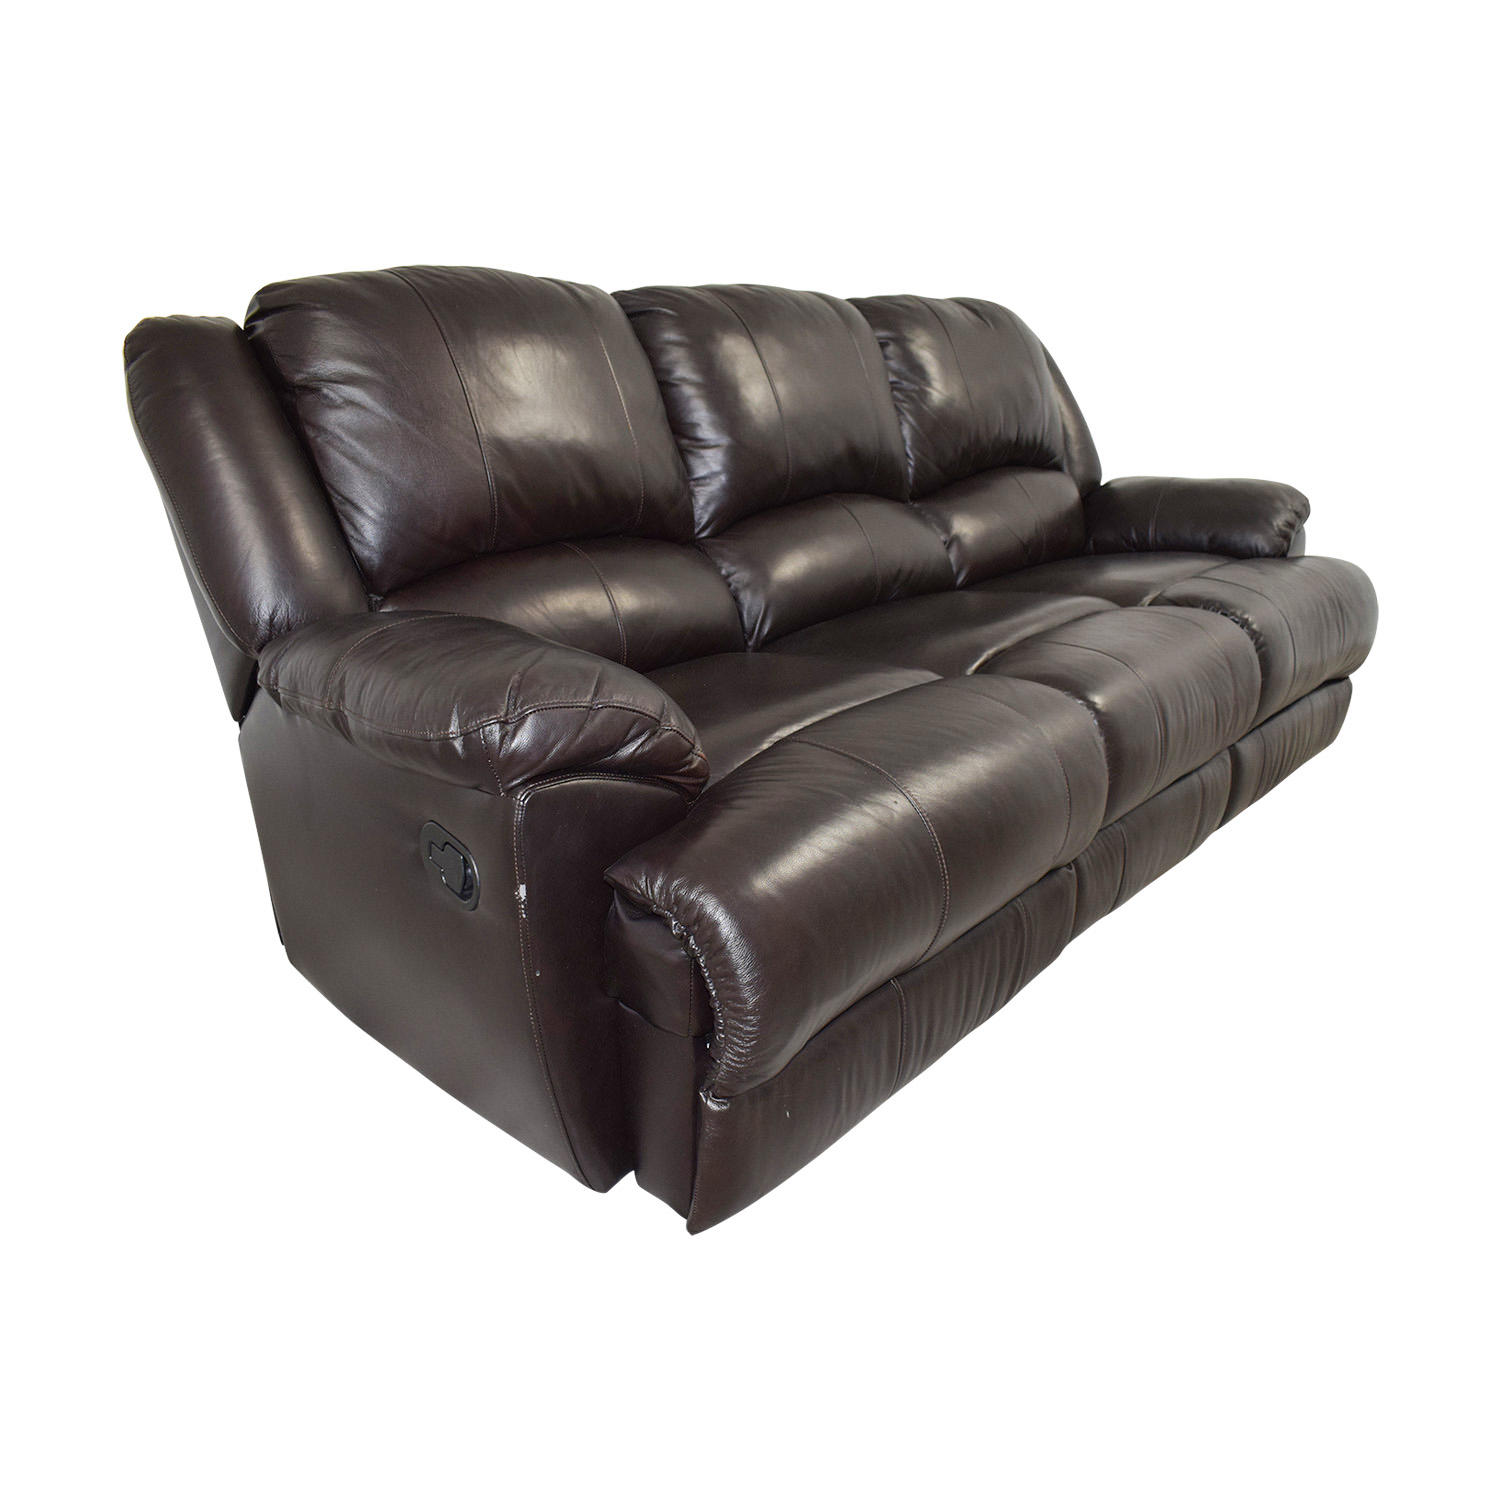 Remarkable 76 Off Ashley Furniture Ashley Furniture Black Leather Reclining Couch Sofas Gmtry Best Dining Table And Chair Ideas Images Gmtryco